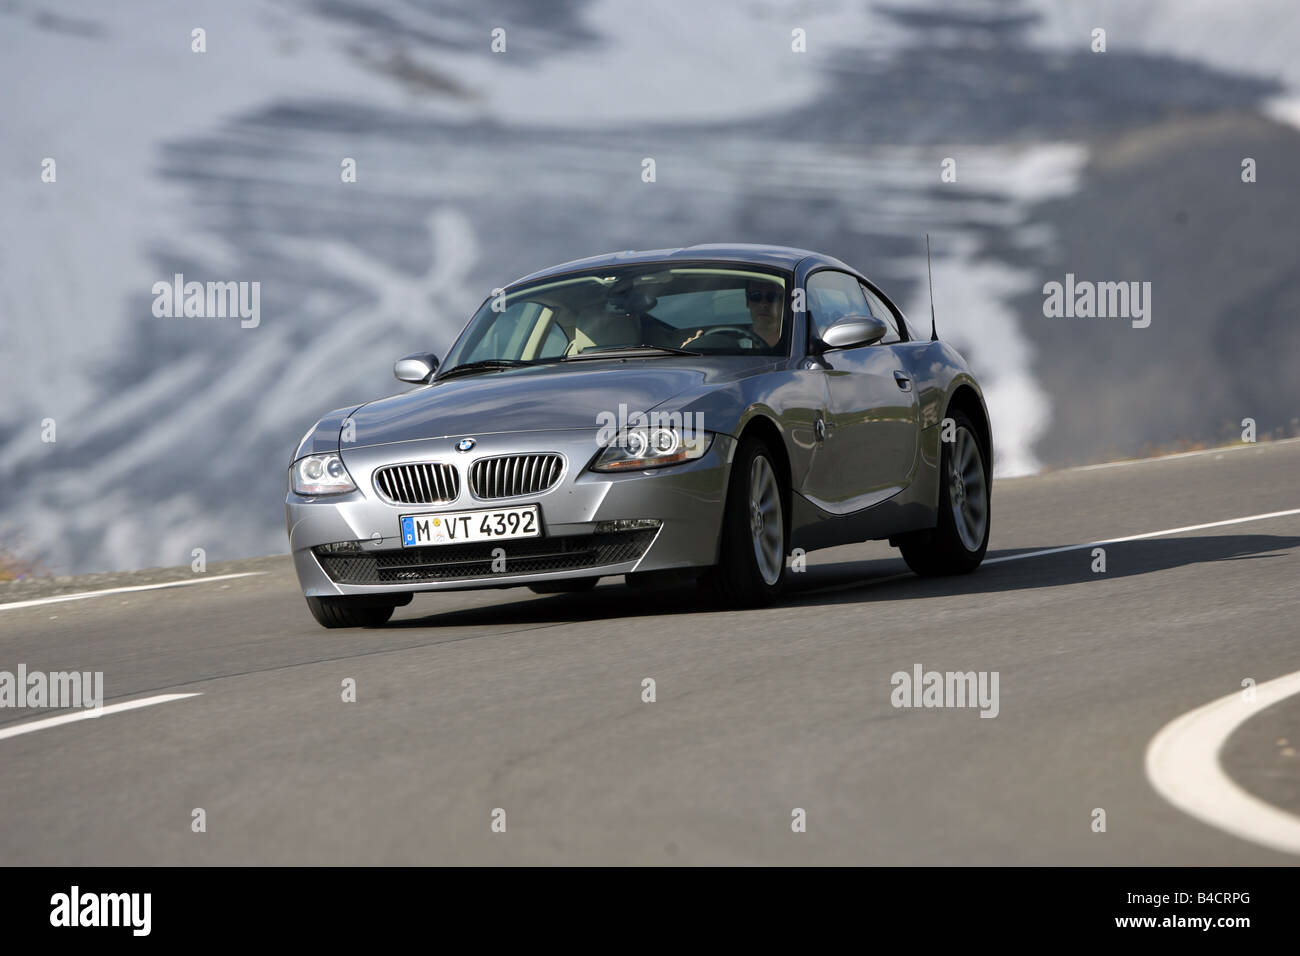 Z4 Coupe Stock Photos Amp Z4 Coupe Stock Images Alamy